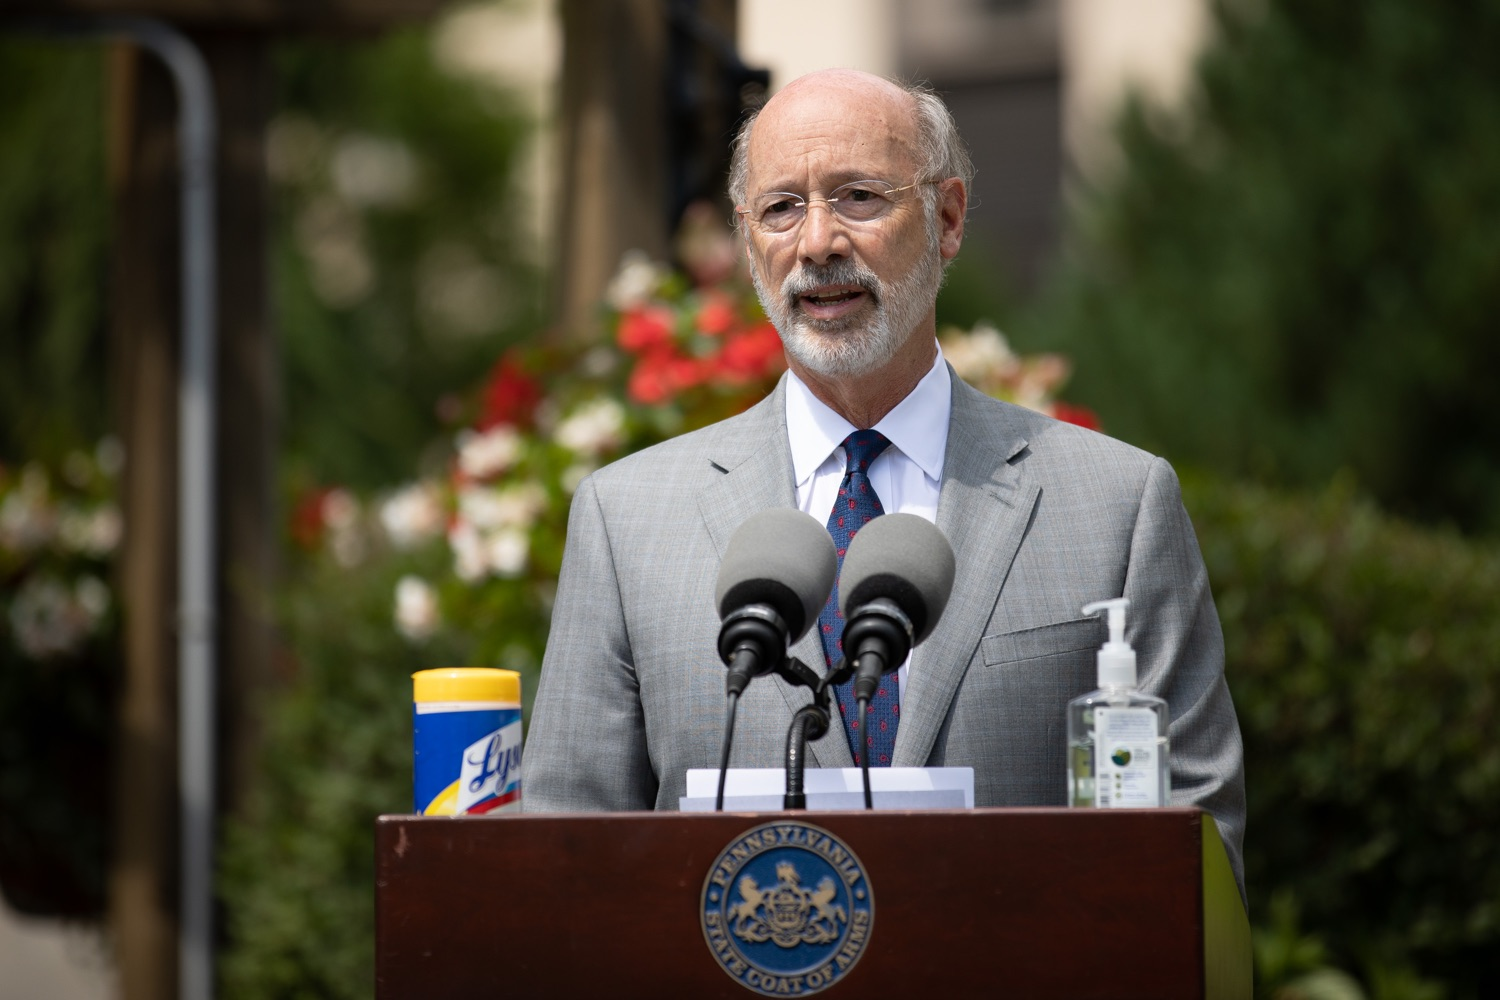 """<a href=""""https://filesource.wostreaming.net/commonwealthofpa/photo/18093_gov-healthcare_workers_dz_15.jpg"""" target=""""_blank"""">⇣Download Photo<br></a>Pennsylvania Governor Tom Wolf speaking during his visit to Milton S. Hershey Medical Center. As the commonwealth continues its measured, phased reopening and COVID-19 case counts continue to decline, Governor Tom Wolf visited Penn State Milton S. Hershey Medical Center today to thank staff and learn more about how the facility is handling the pandemic and preparing for a possible resurgence in the fall.  Harrisburg, PA  June 24, 2020"""